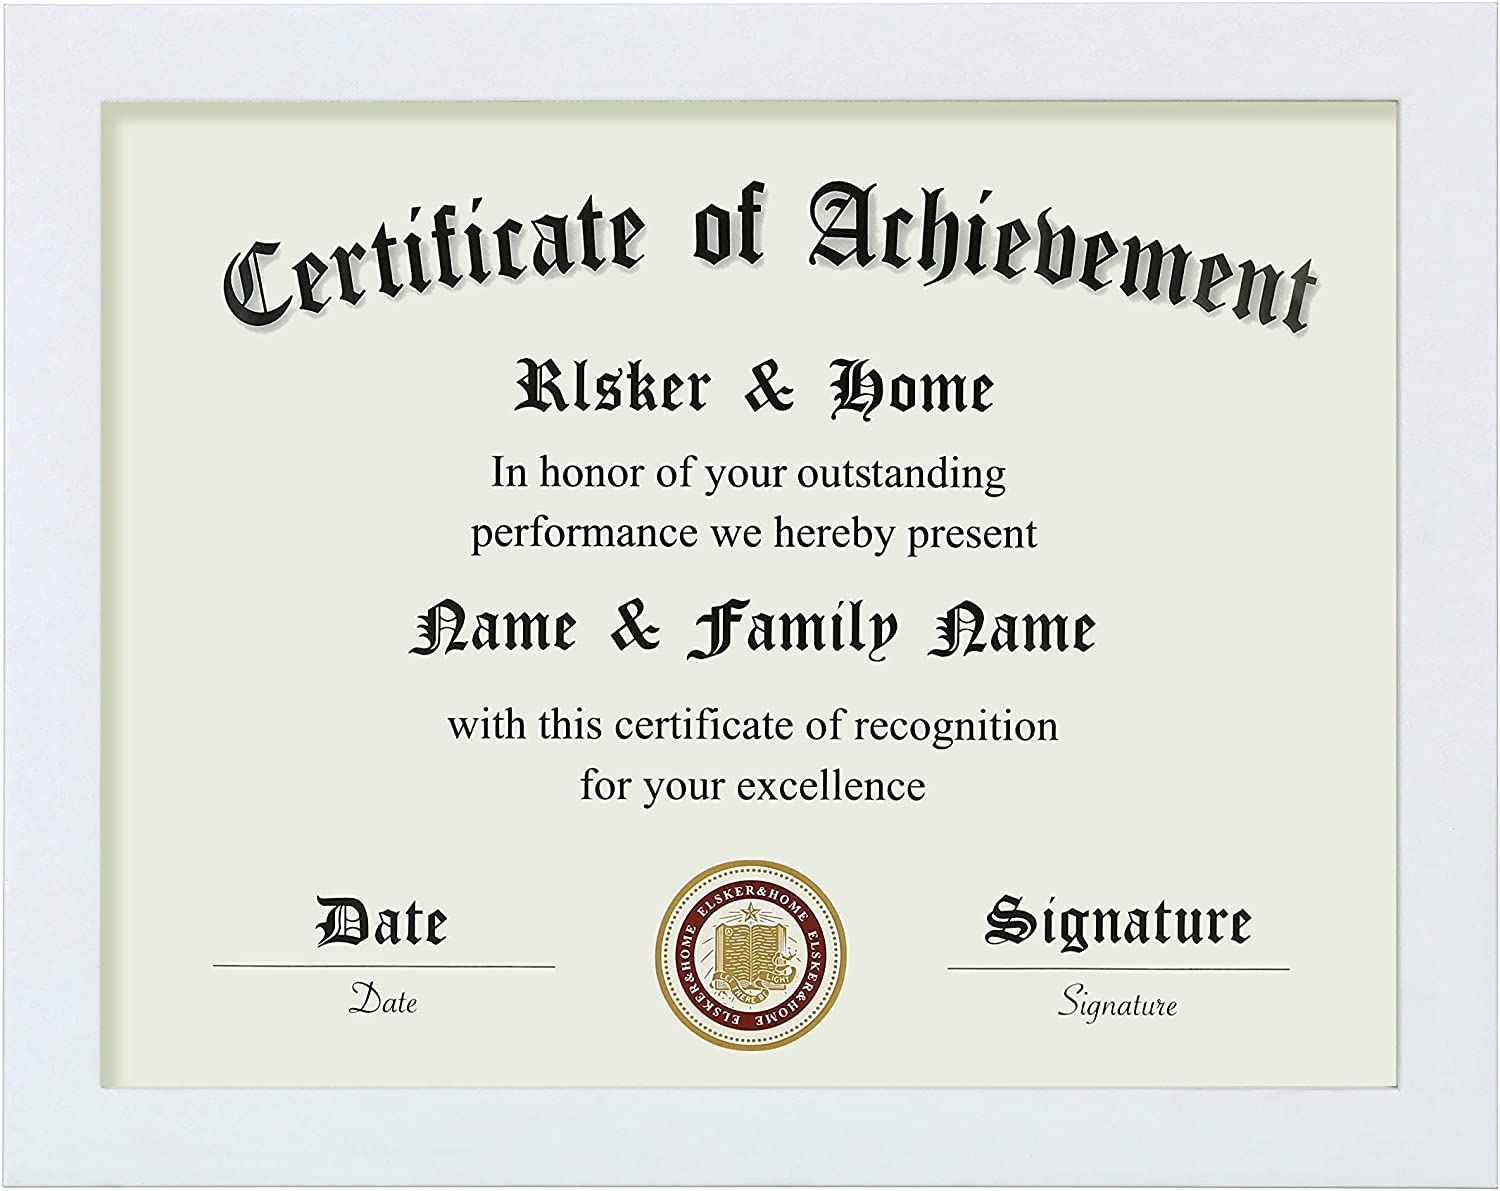 ONLY Display 11/×14 Document//Certificate ELSKER/&HOME Diploma Frame Classic Cherry Wood Color Wide Frame Acrylic Plate Wall Mount Display Double Mat, Black Mat with Golden Rim